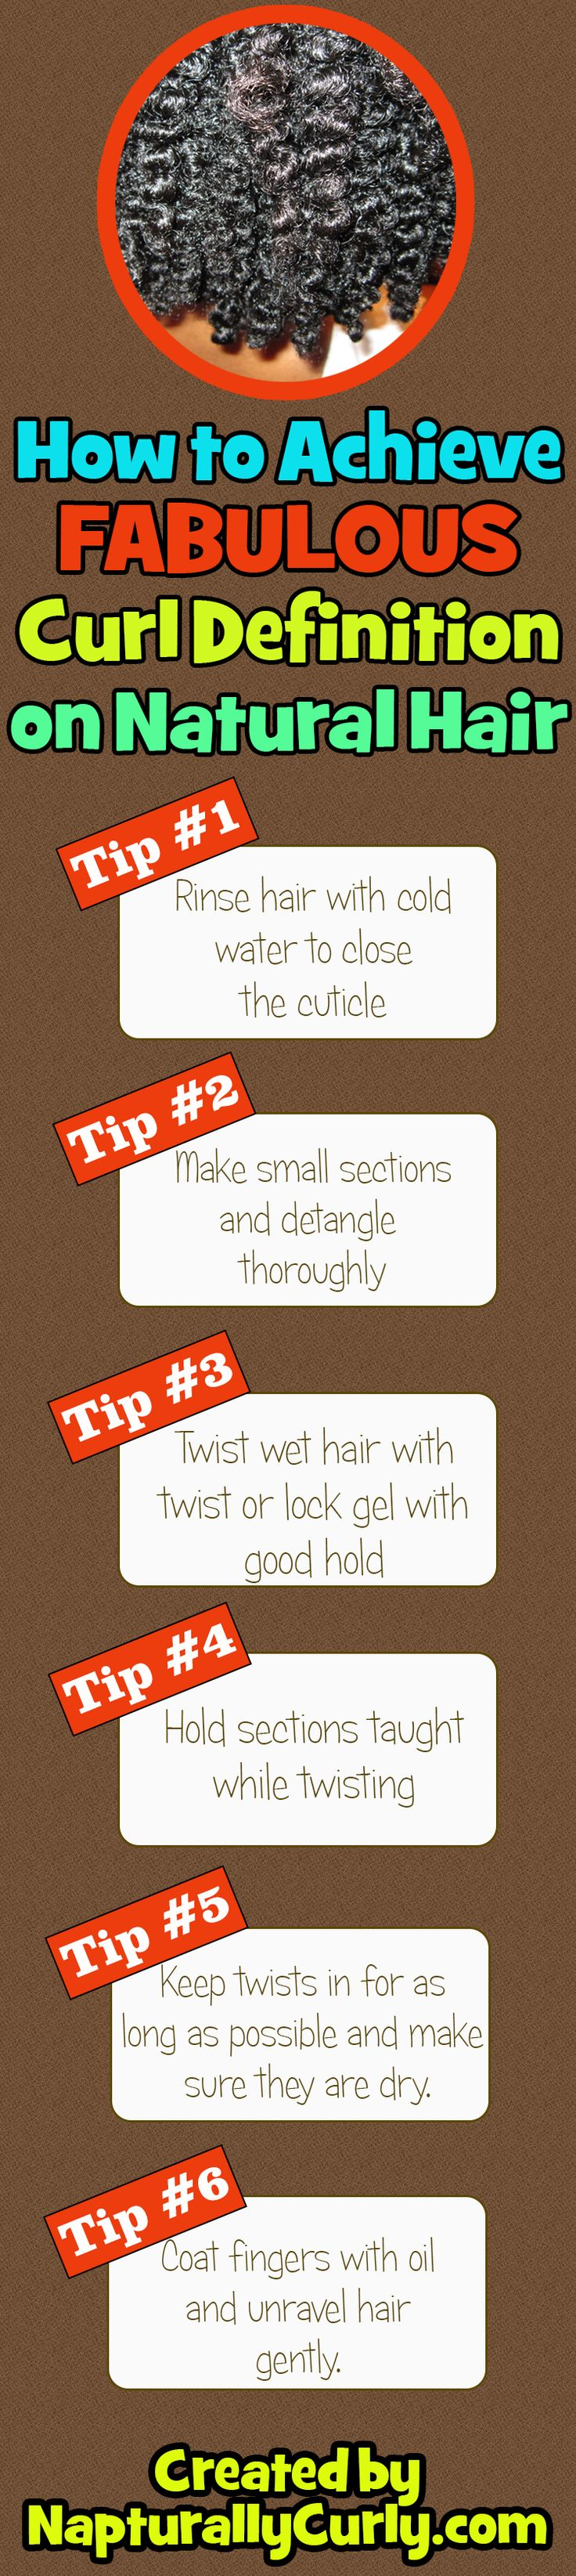 Yes, natural hair is still pretty without curl definition but here are some tips when you want to define your tresses. via http://napturallycurly.com